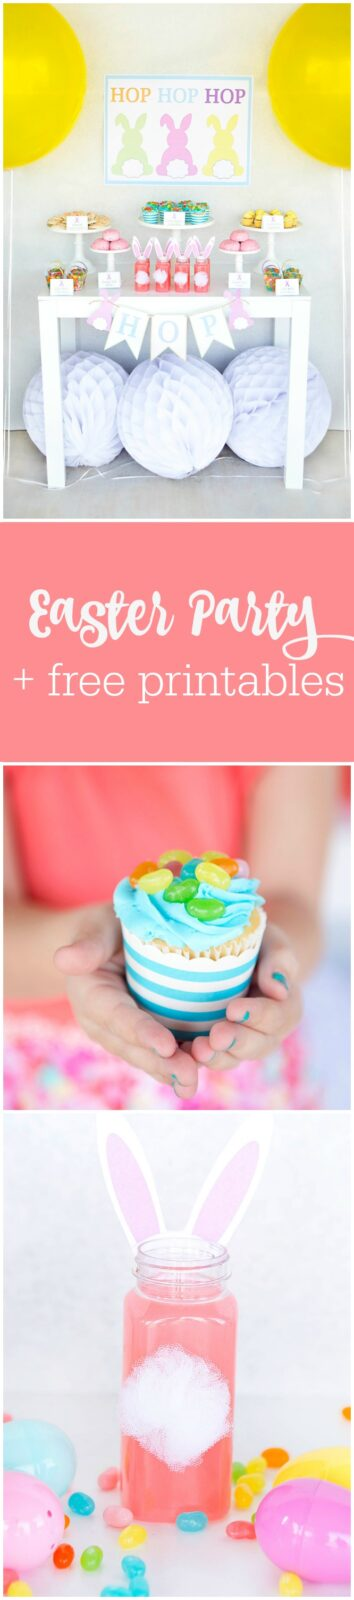 Easter party + free printables by Lillian Hope Designs featured on The Party Teacher